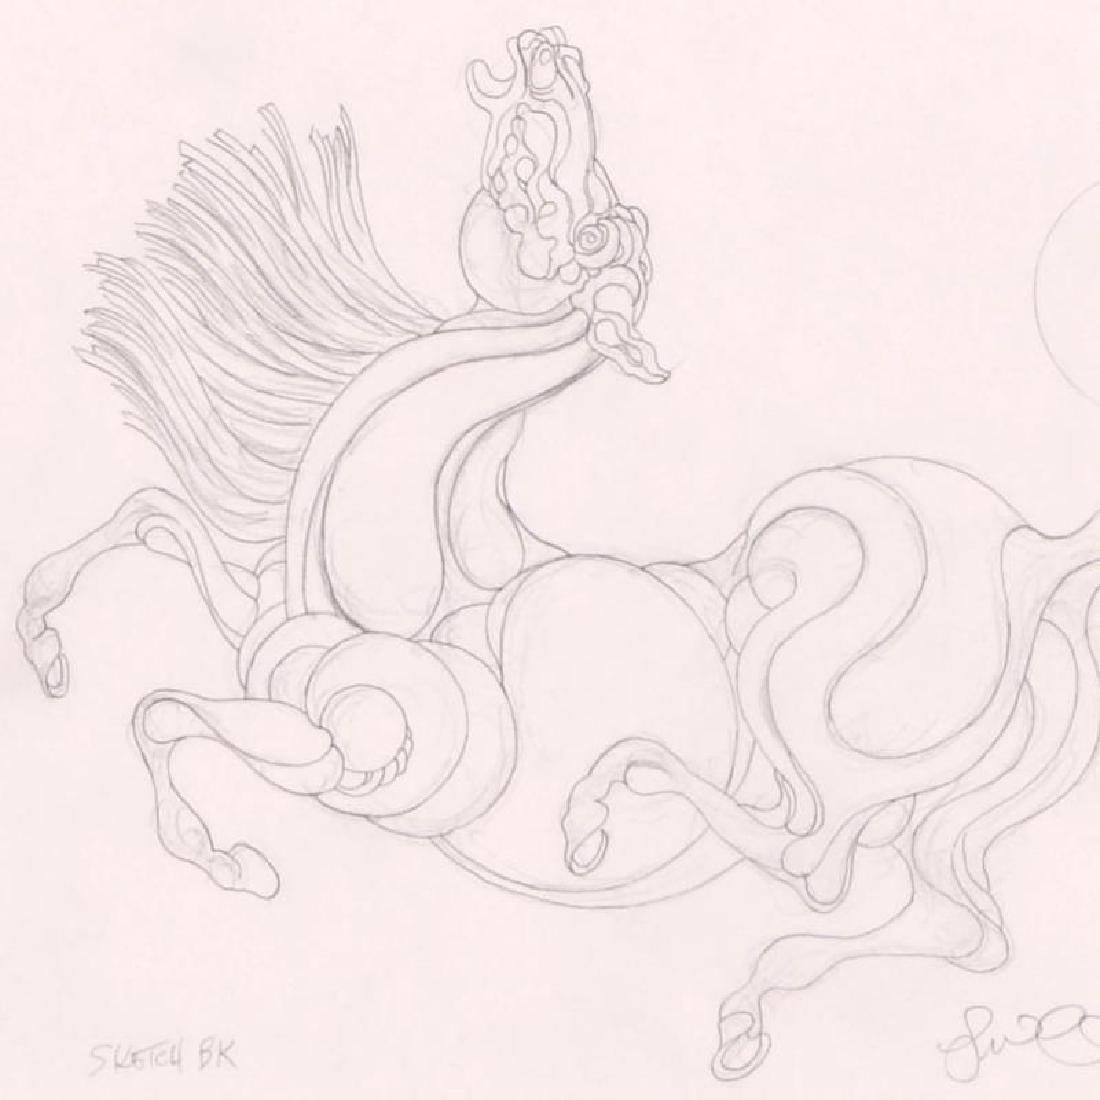 BK Sketch by Azoulay - 2